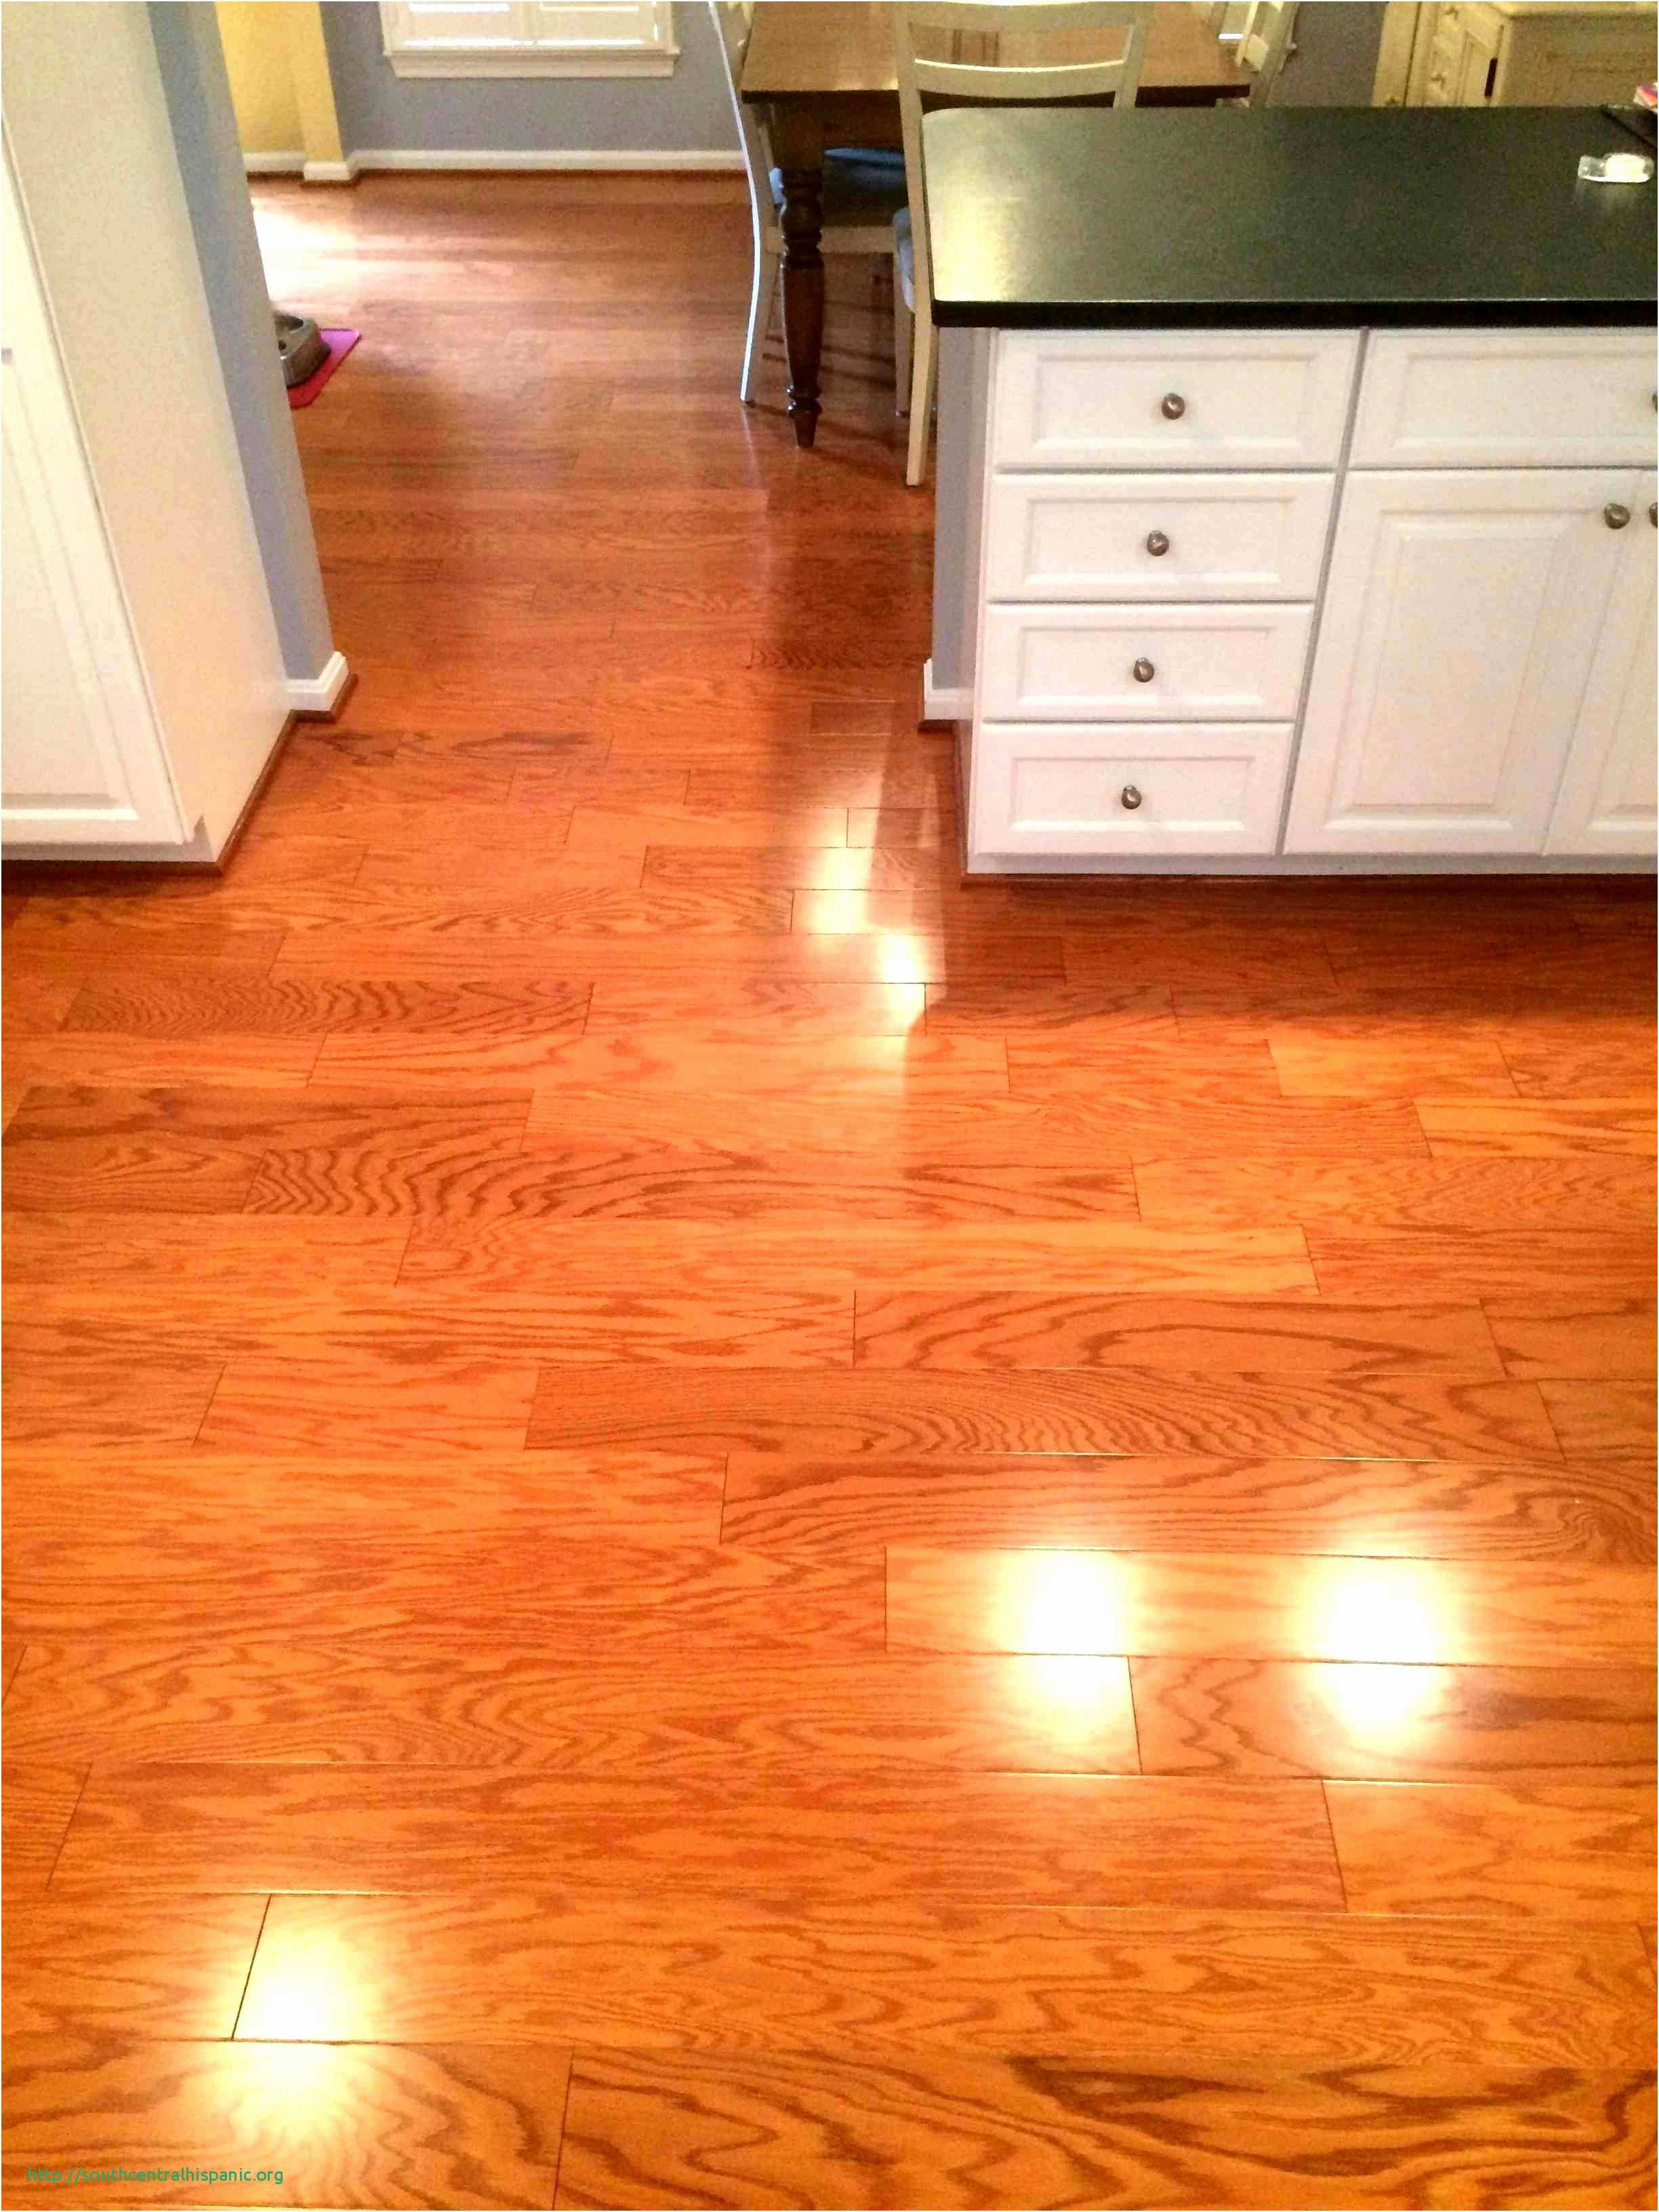 Hardwood Floor Refinishing orange County Of Hardwood Floor Refinishing Nj Dahuacctvth Com Inside Hardwood Floor Refinishing Nj